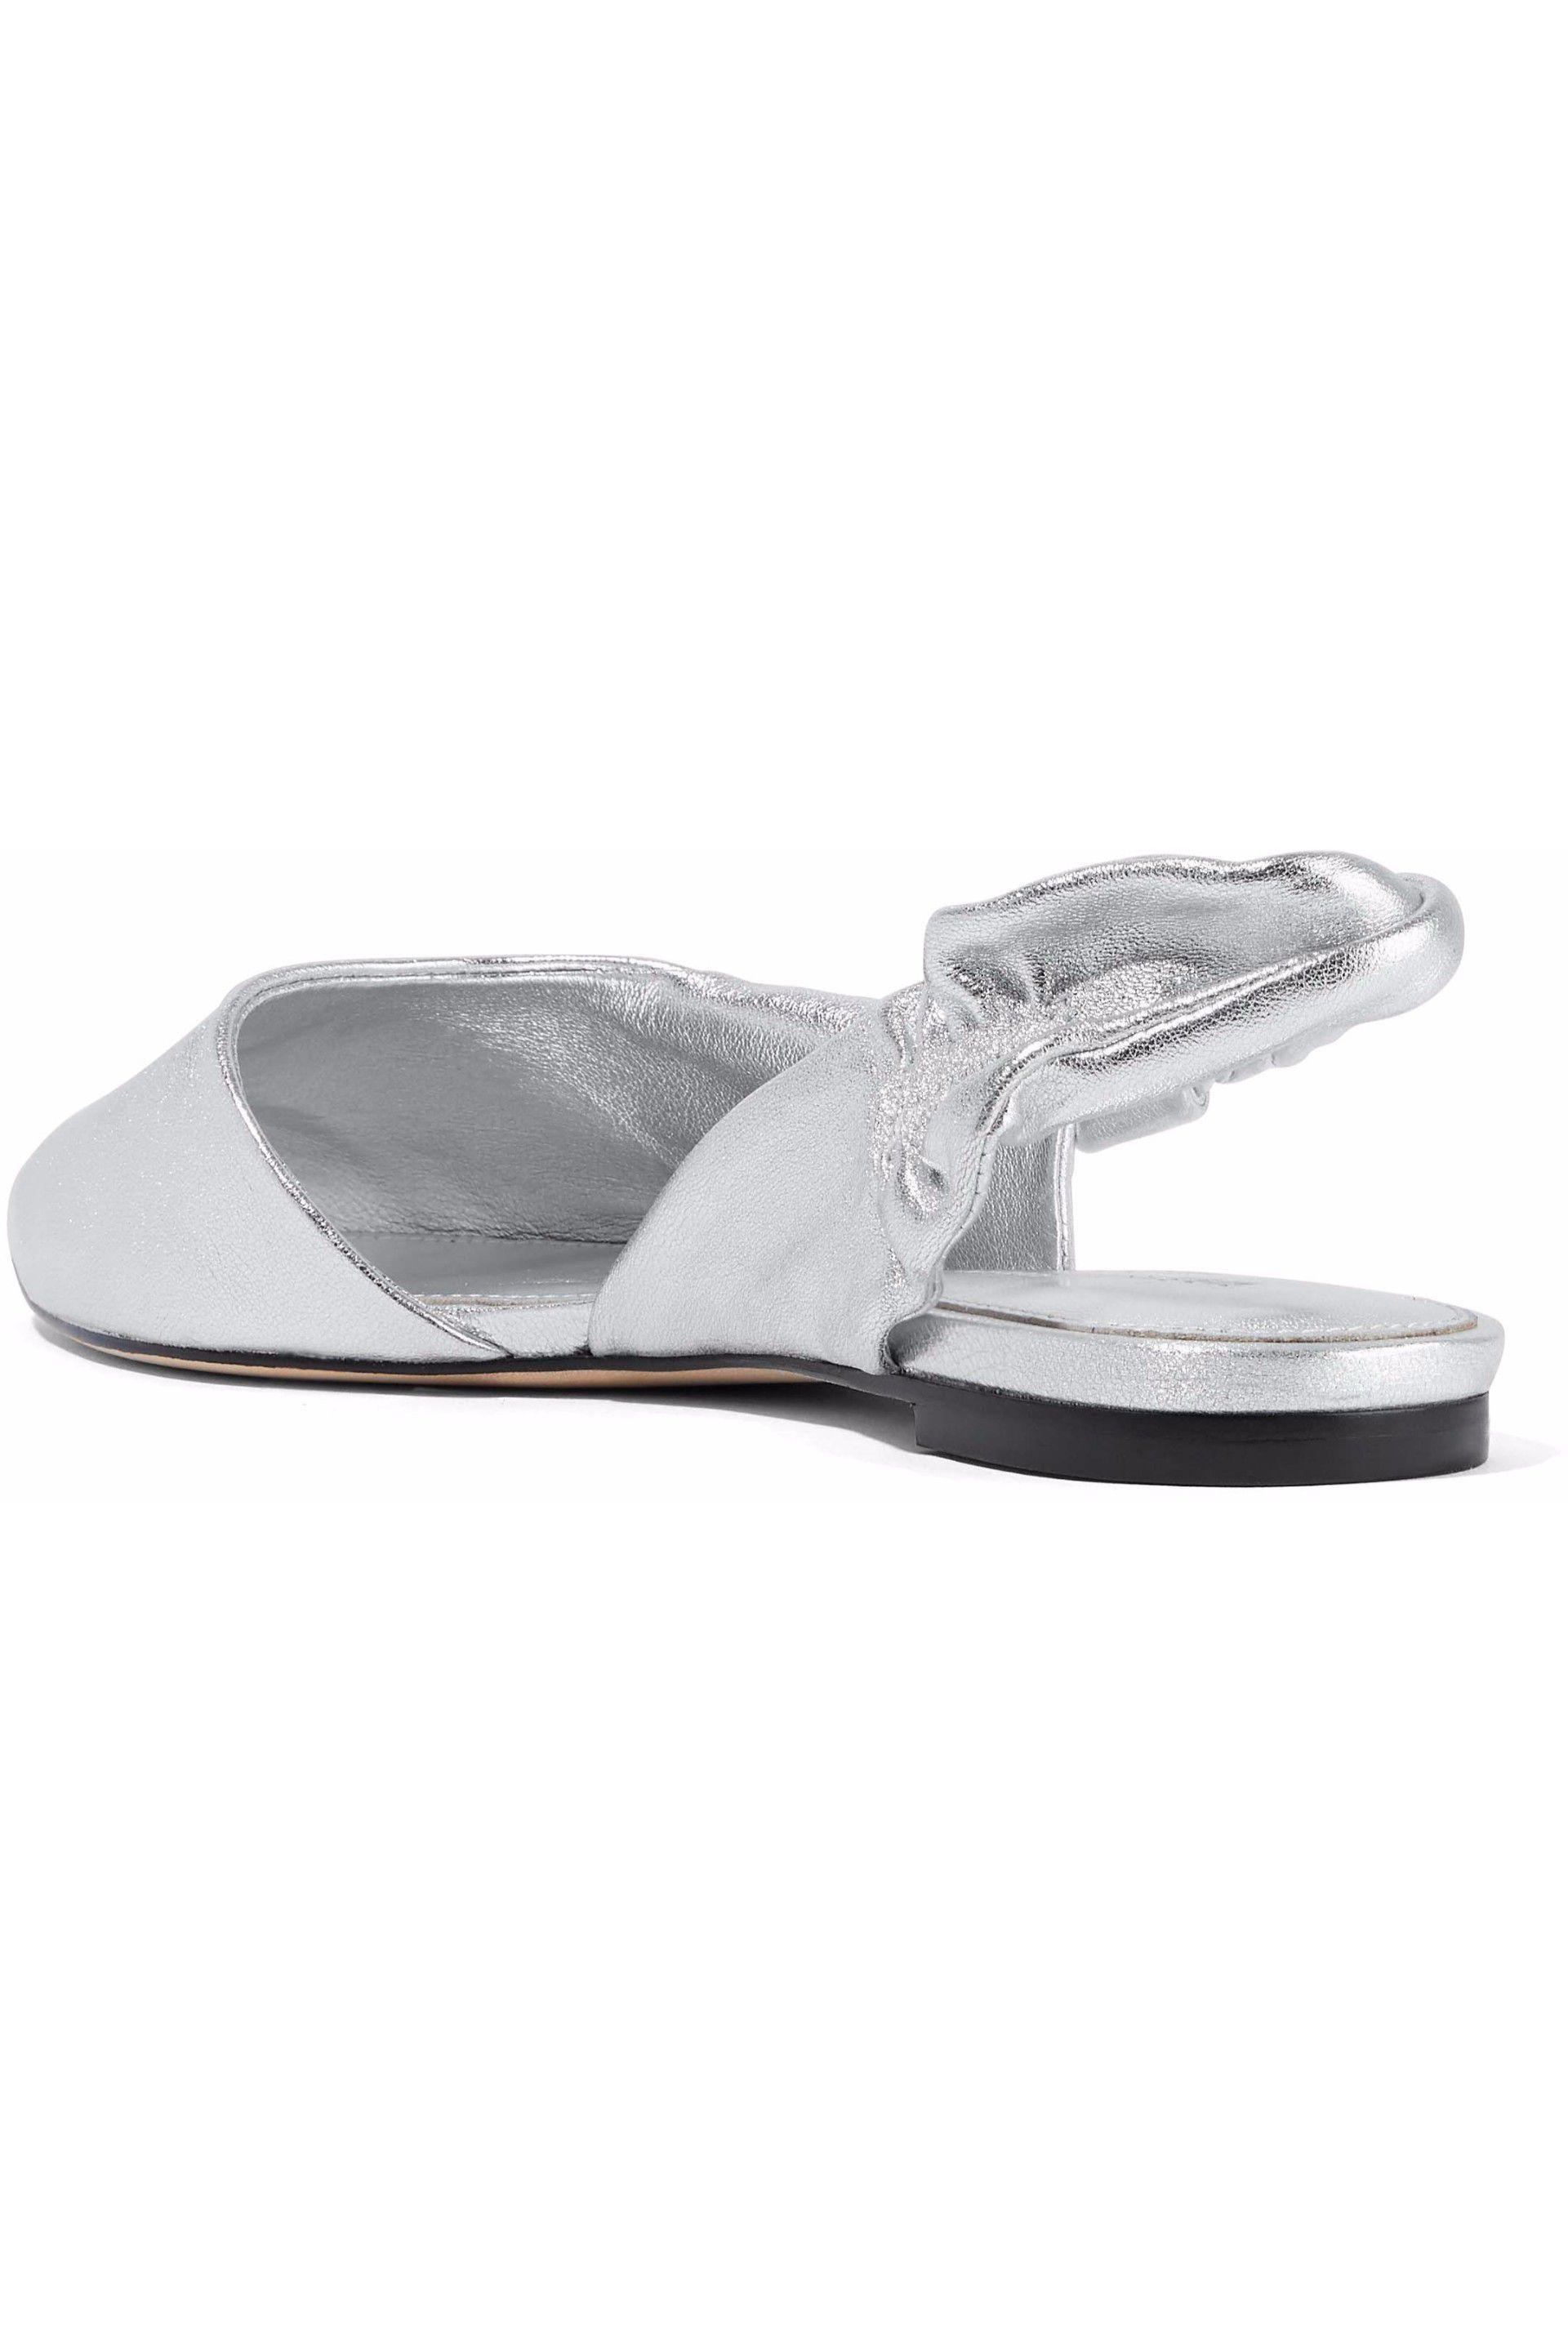 d96412721c9 Sigerson Morrison - Woman Sham Metallic Leather Slingback Point-toe Flats  Silver - Lyst. View fullscreen